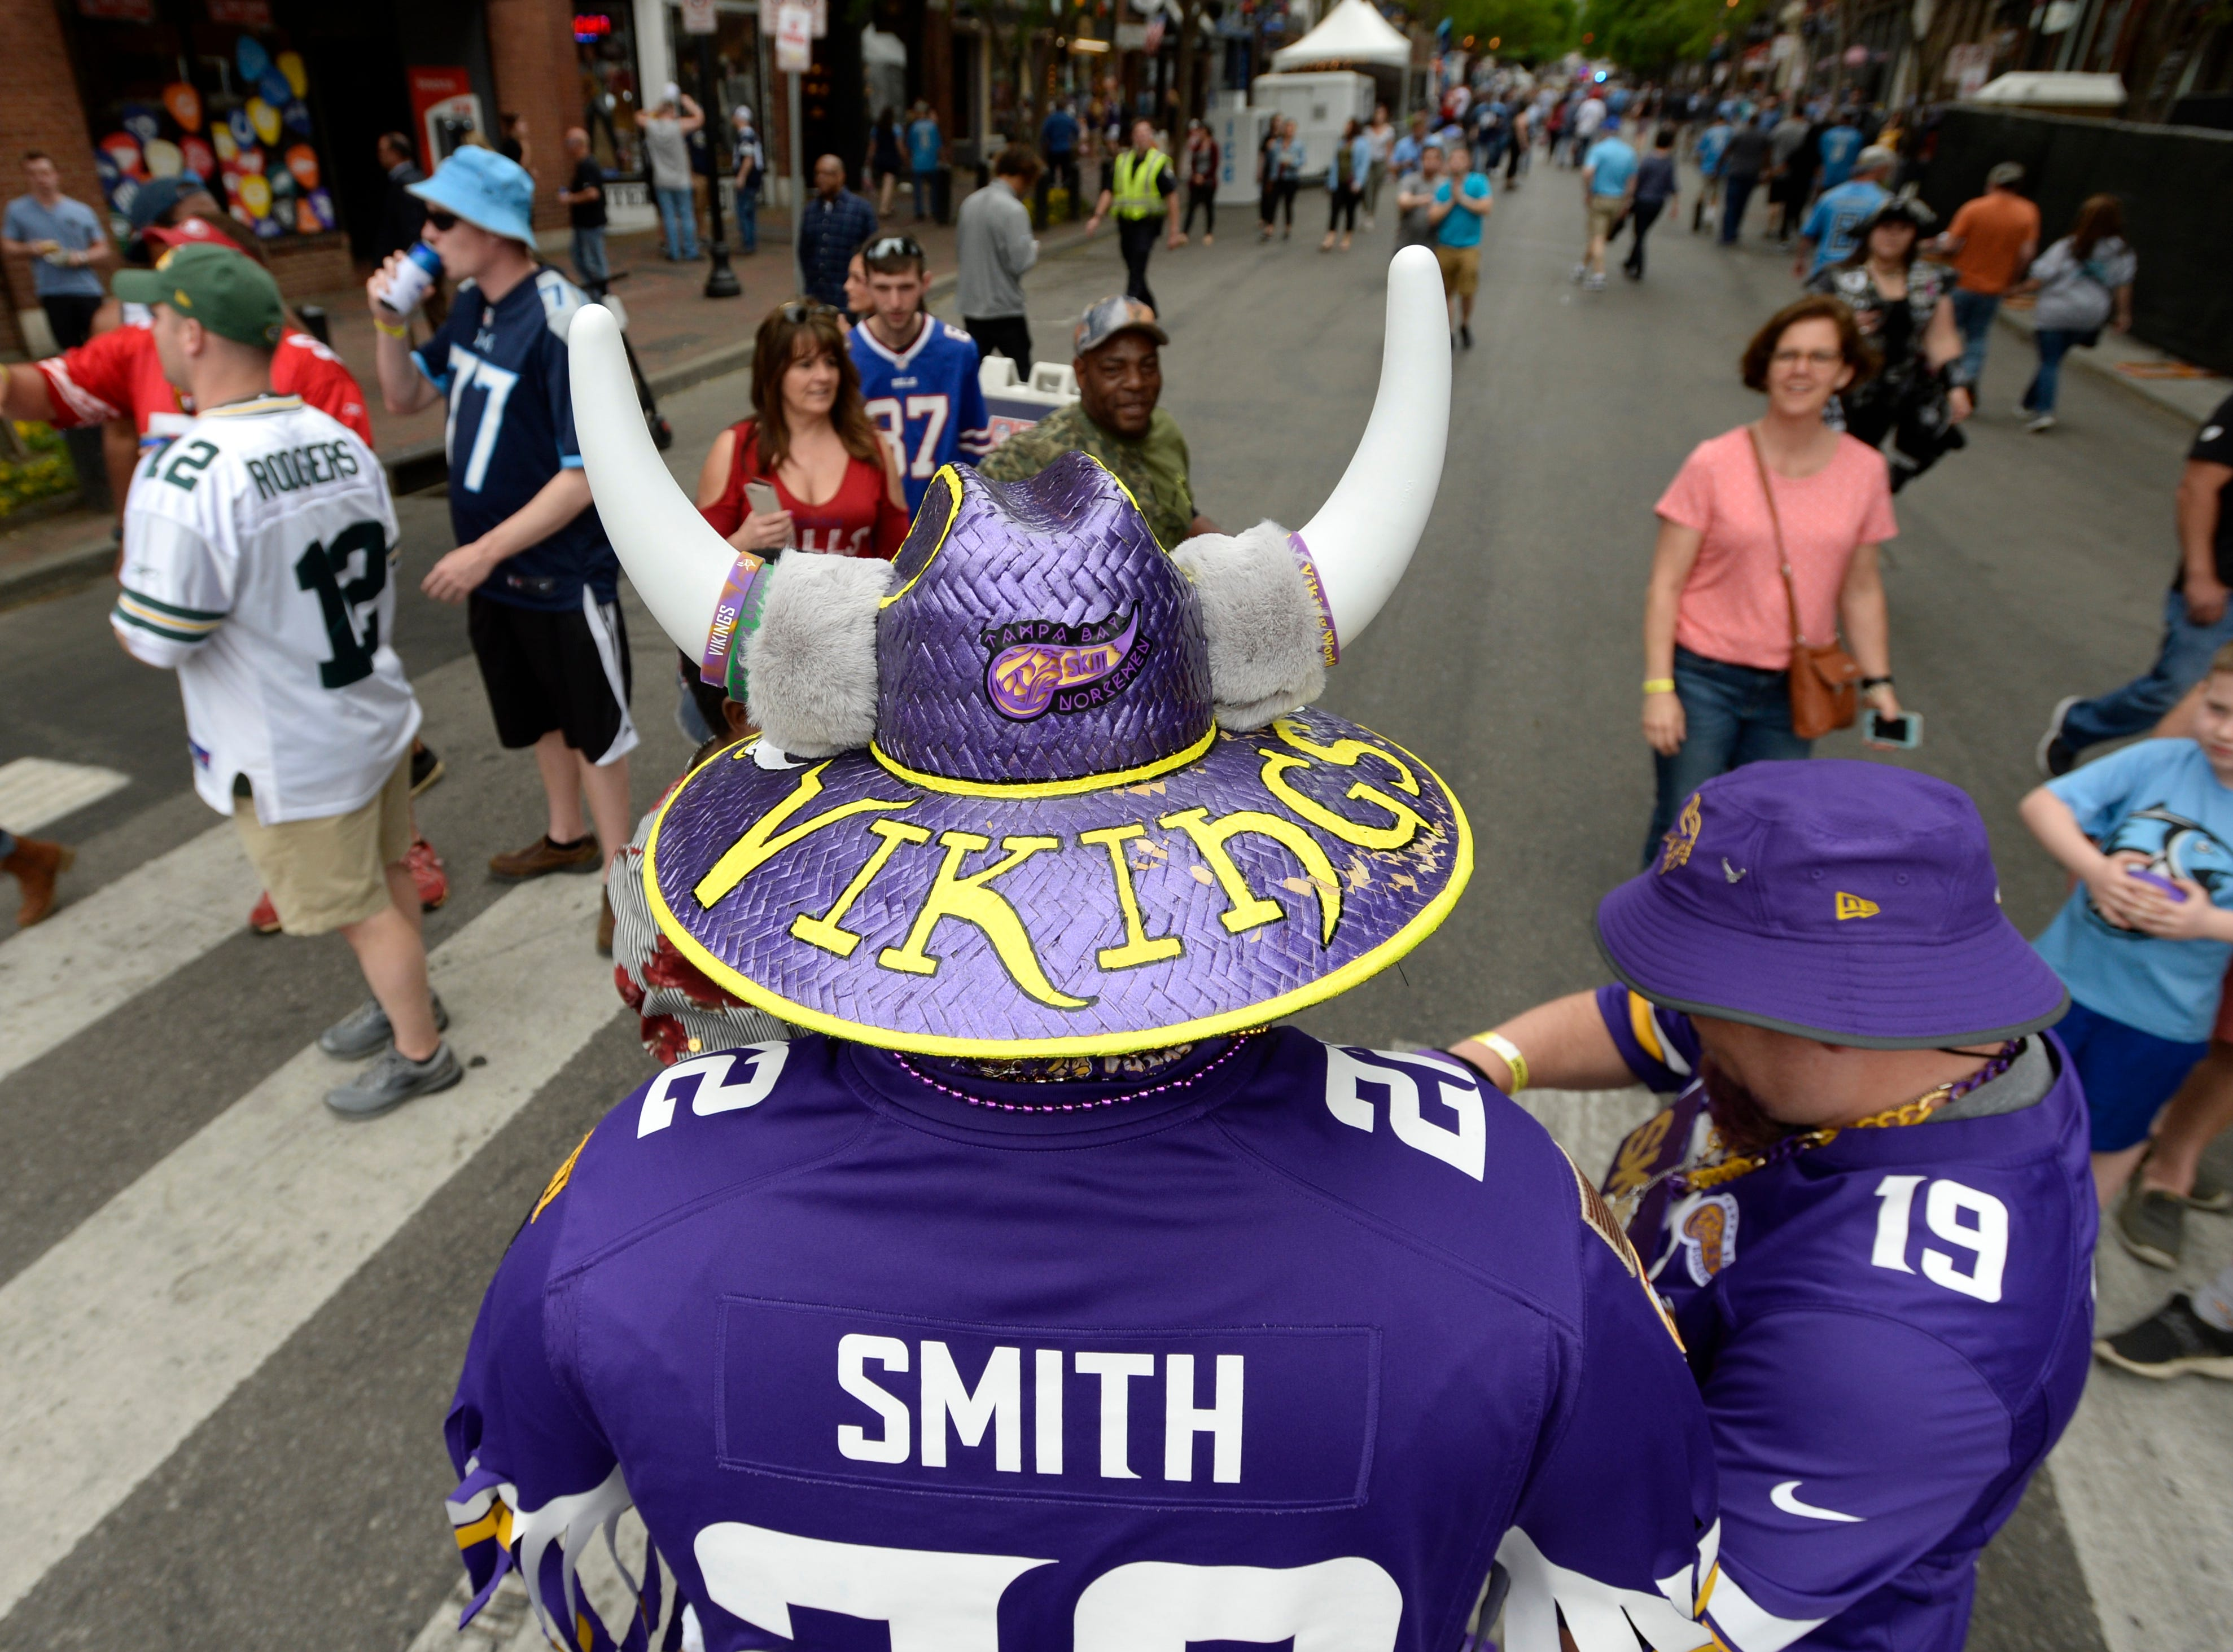 A Minnesota Vikings fan checks out Lower Broadway before the start of the first round of the NFL Draft  Thursday, April 25, 2019 in Nashville, Tenn.